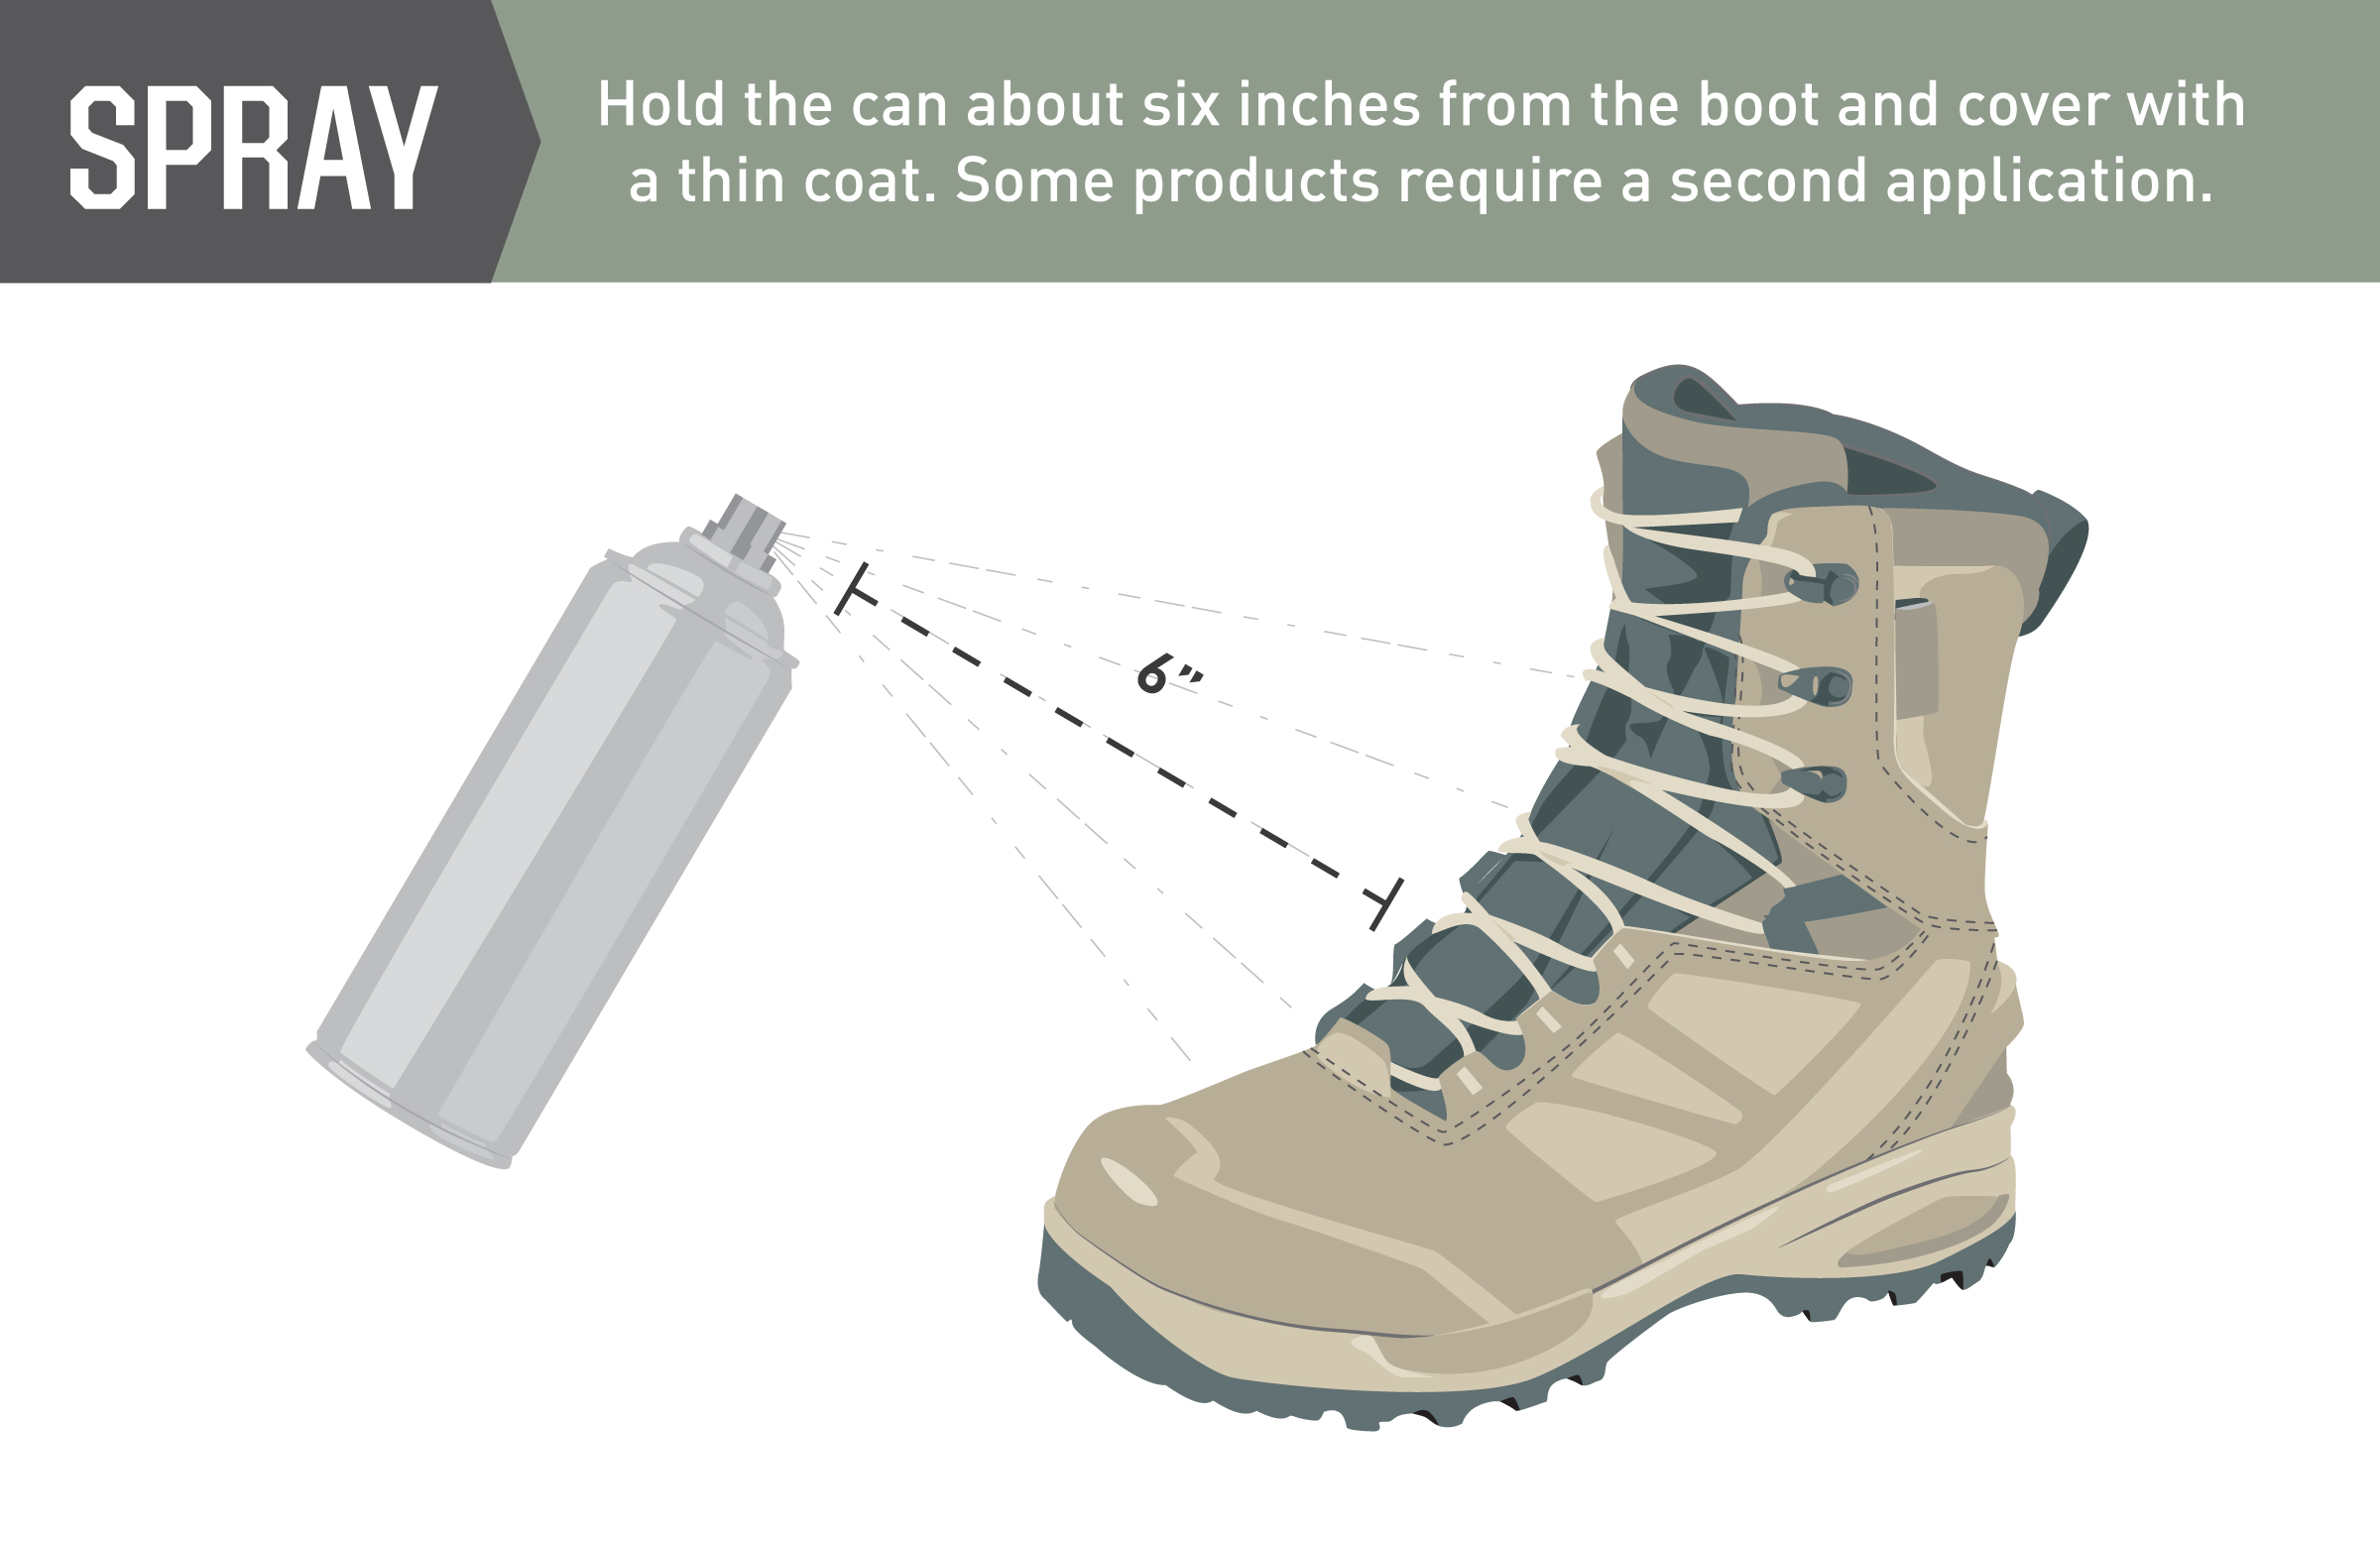 waterproofboots_spray